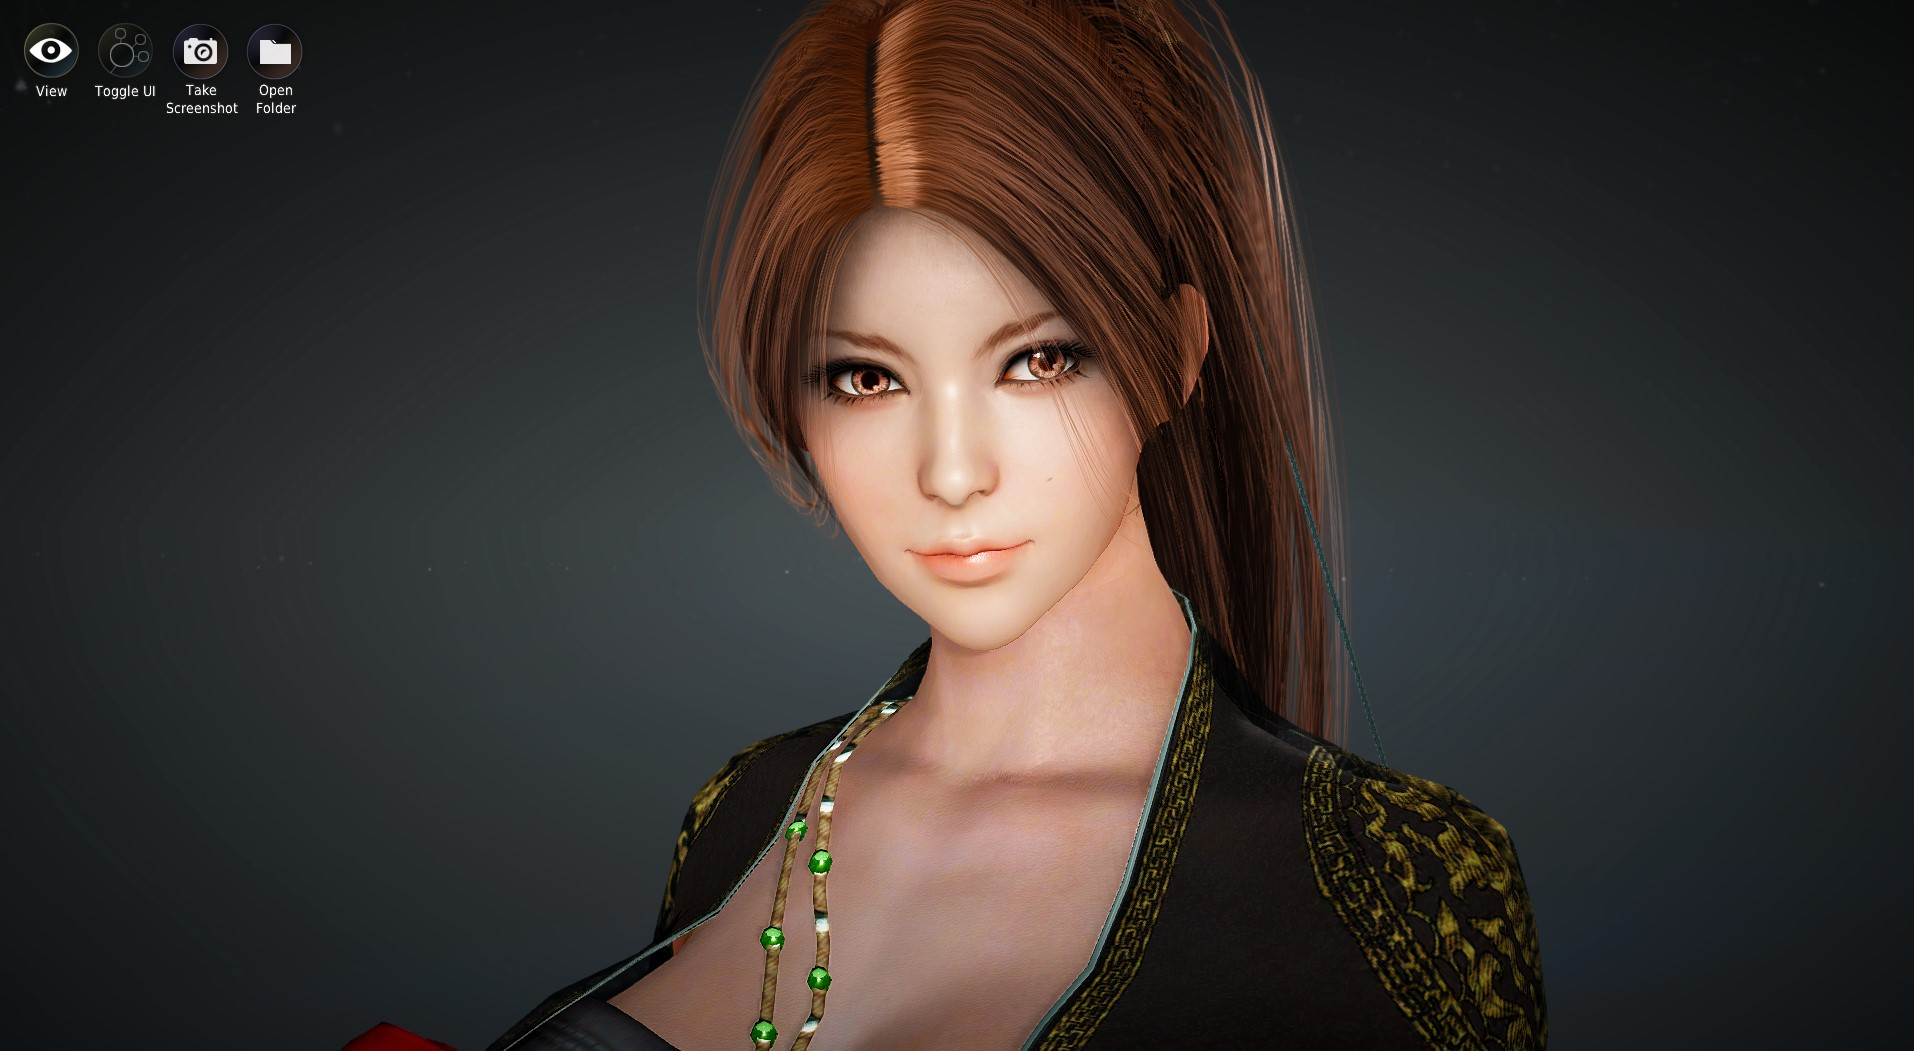 art of rivana mina commisions drawings and bdo templates closed